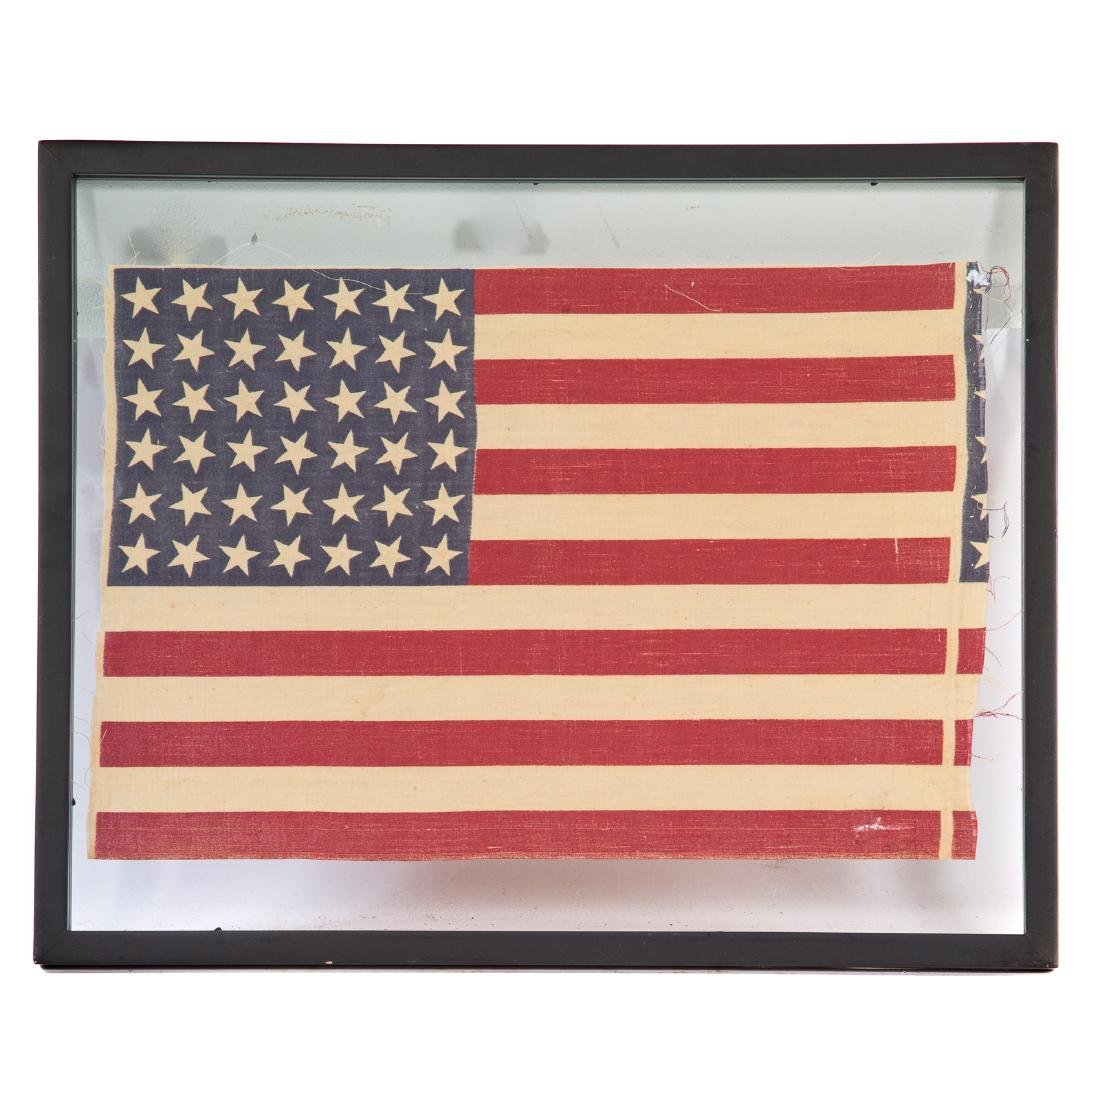 United States 42-star printed flag